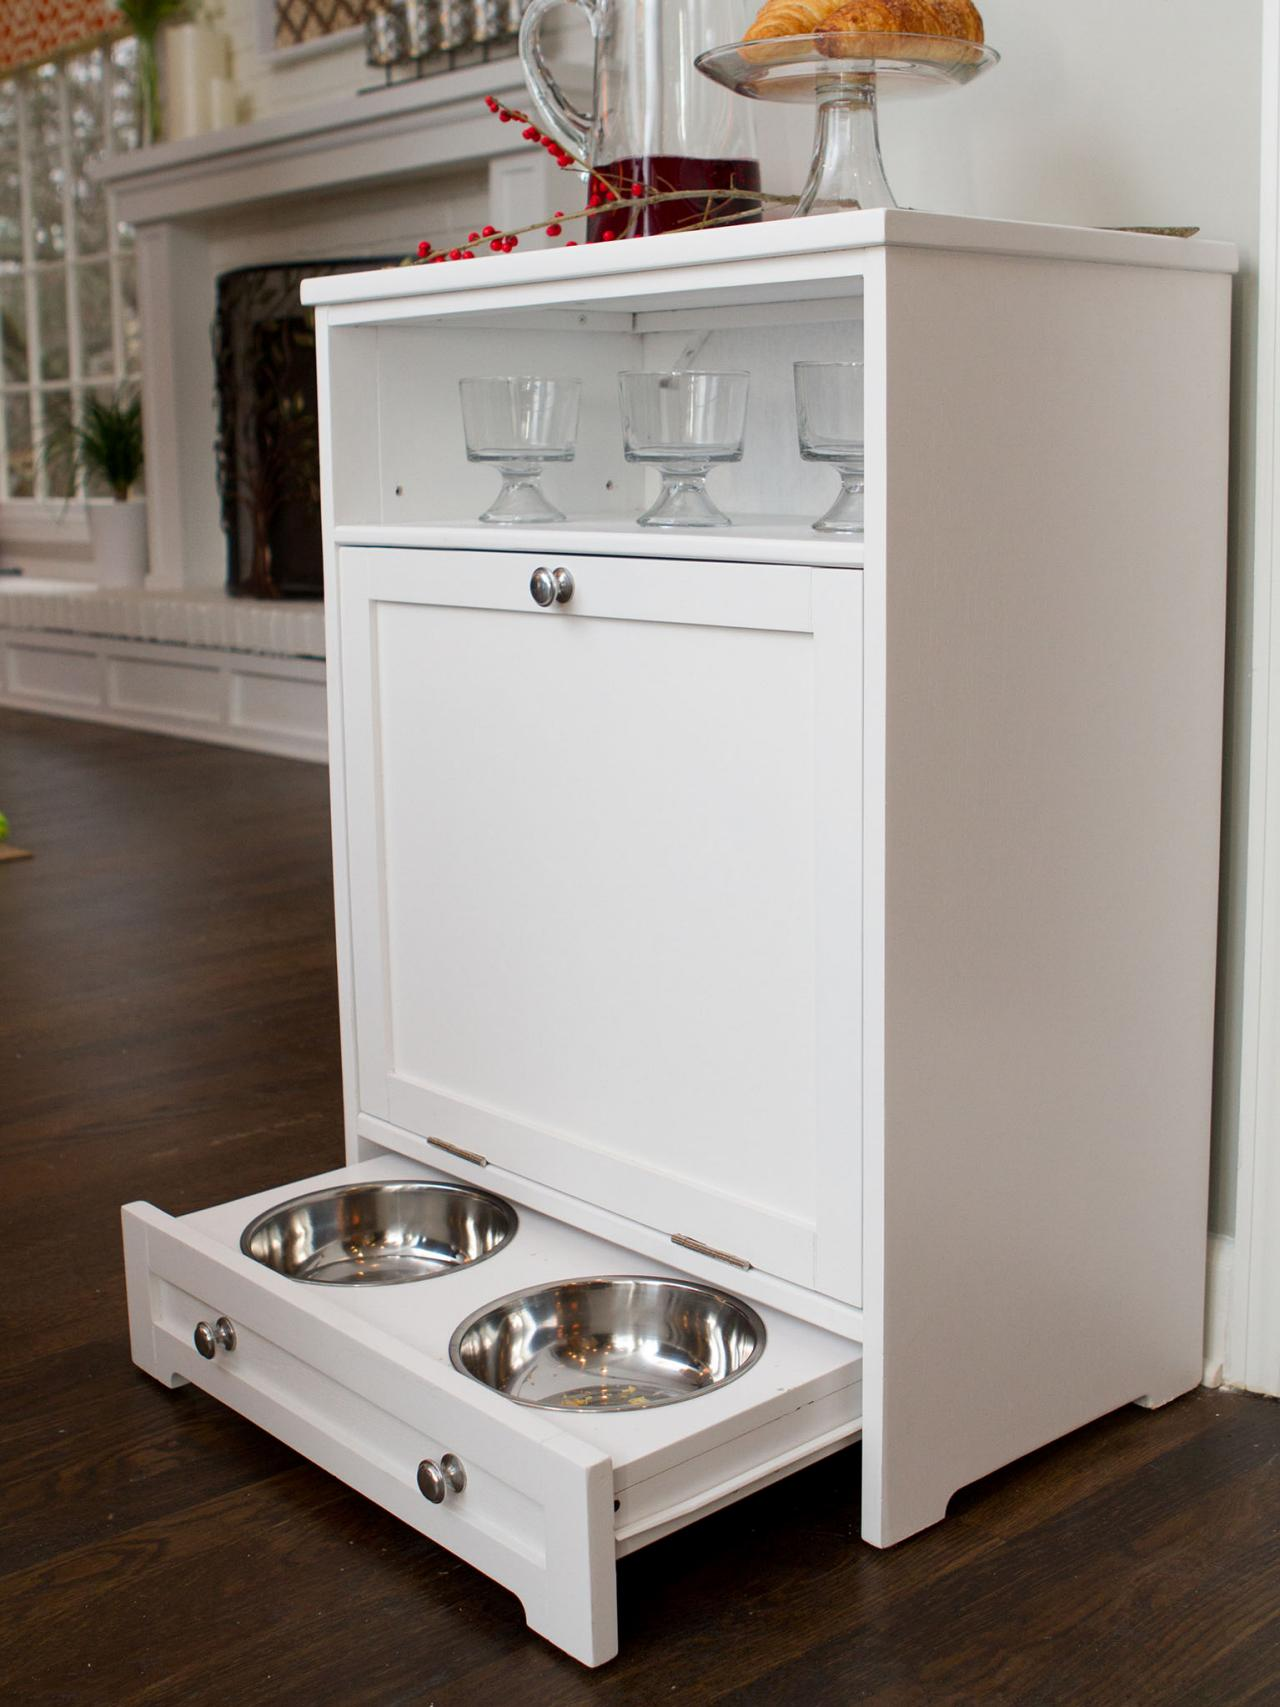 organizing furniture storage solutions toy dog for captivating and pet cabinet feeders food feeder